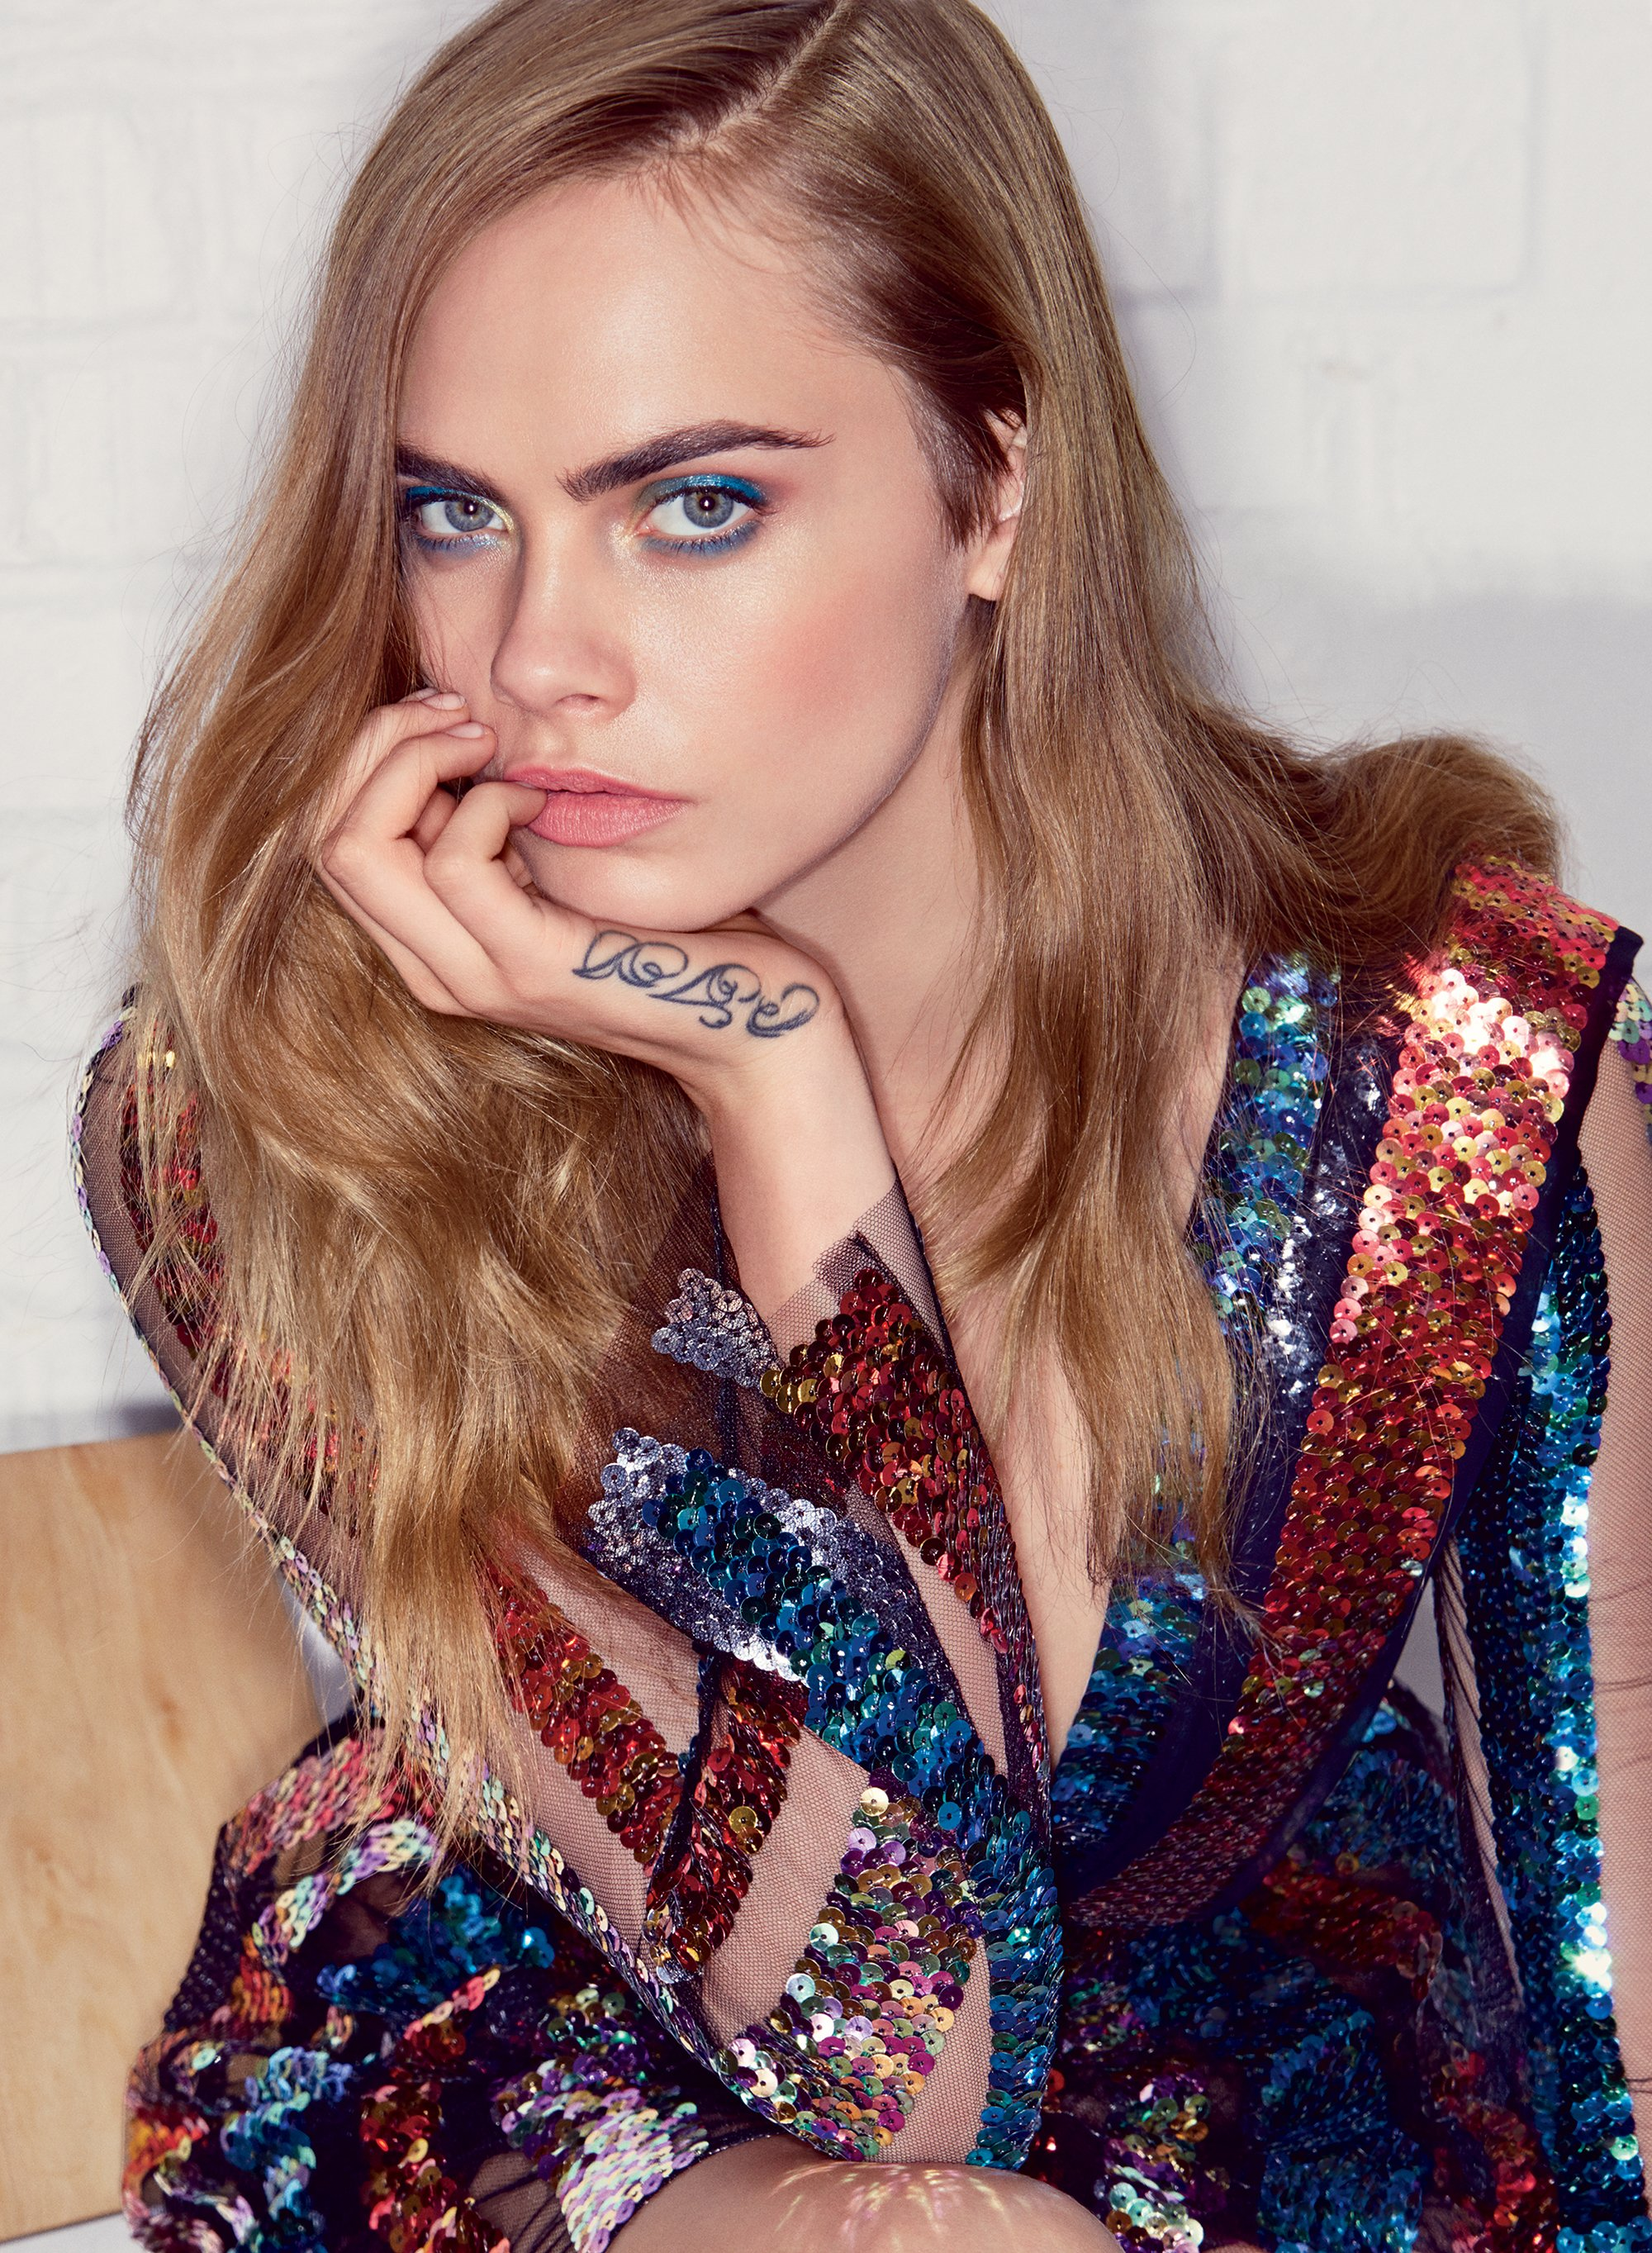 cara-delevingne-vogue-july-2015-01